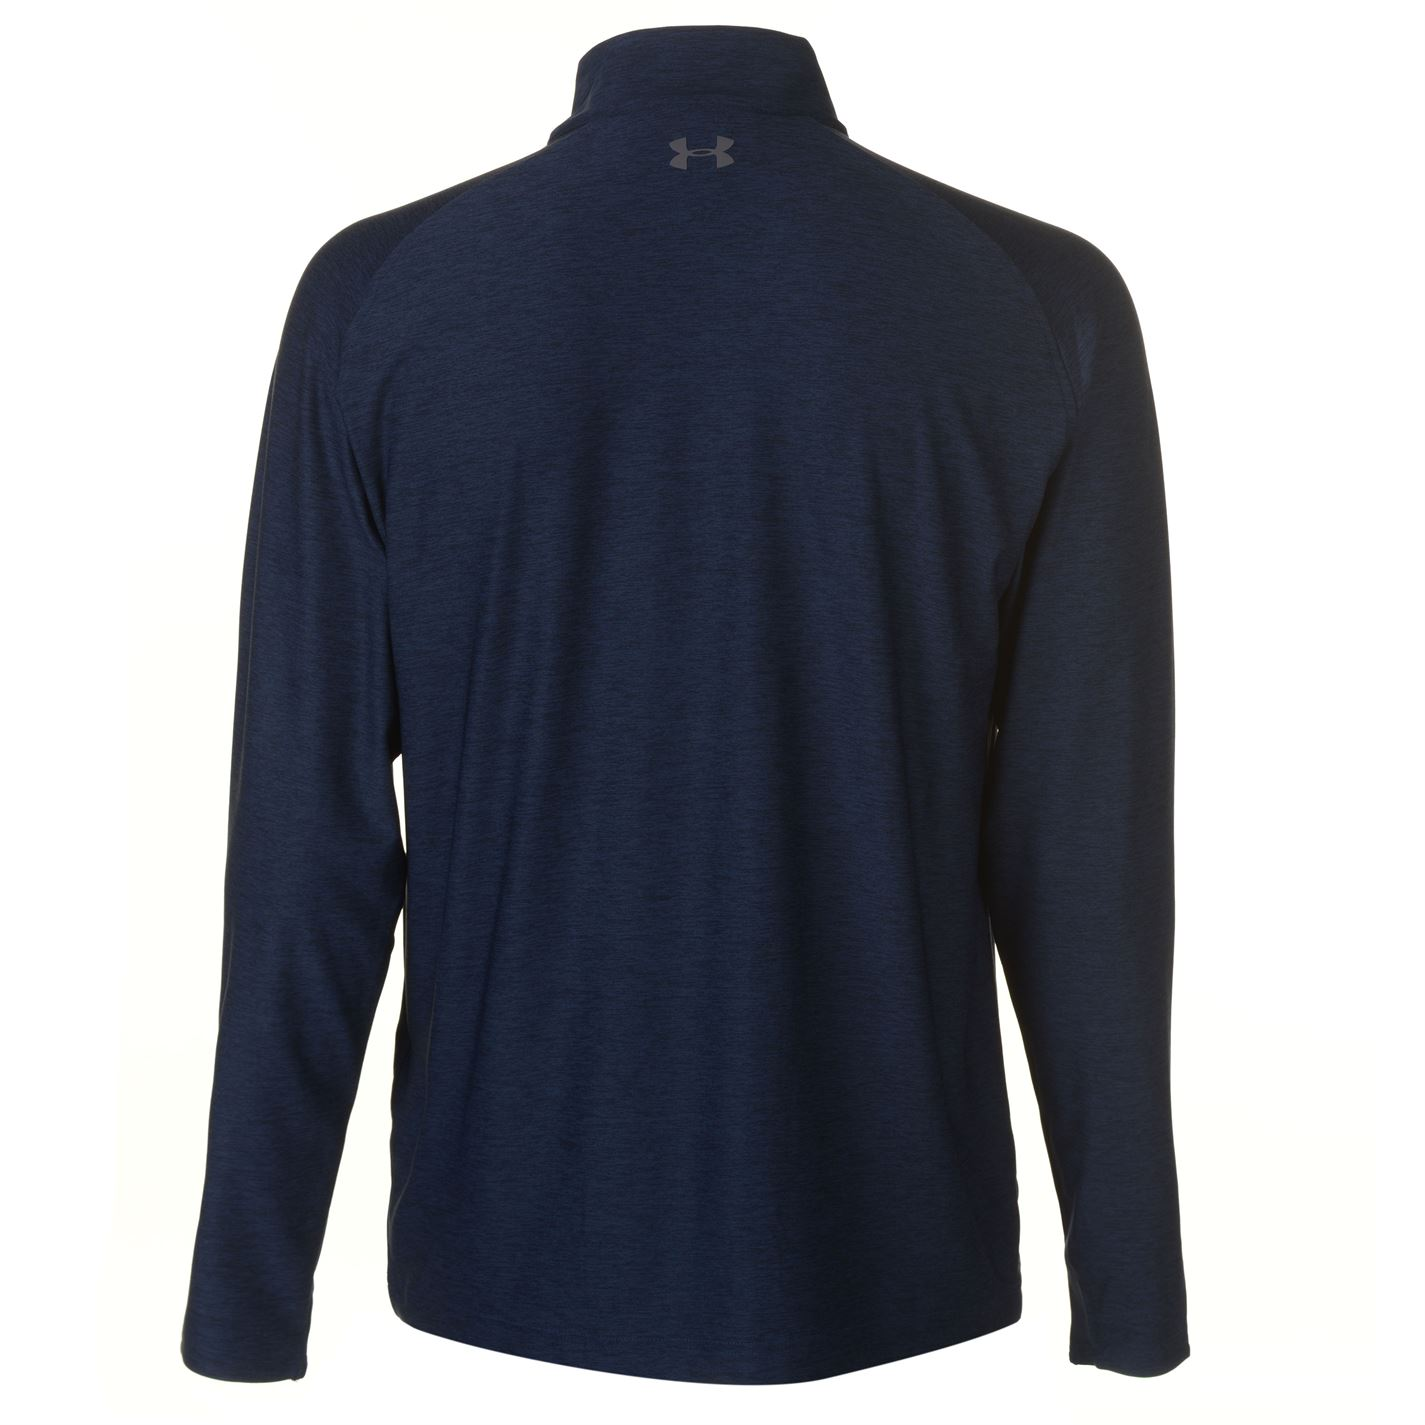 Under Armour Mens Play Off Half Zip Top Pullover Sweater Jumper Long Sleeve